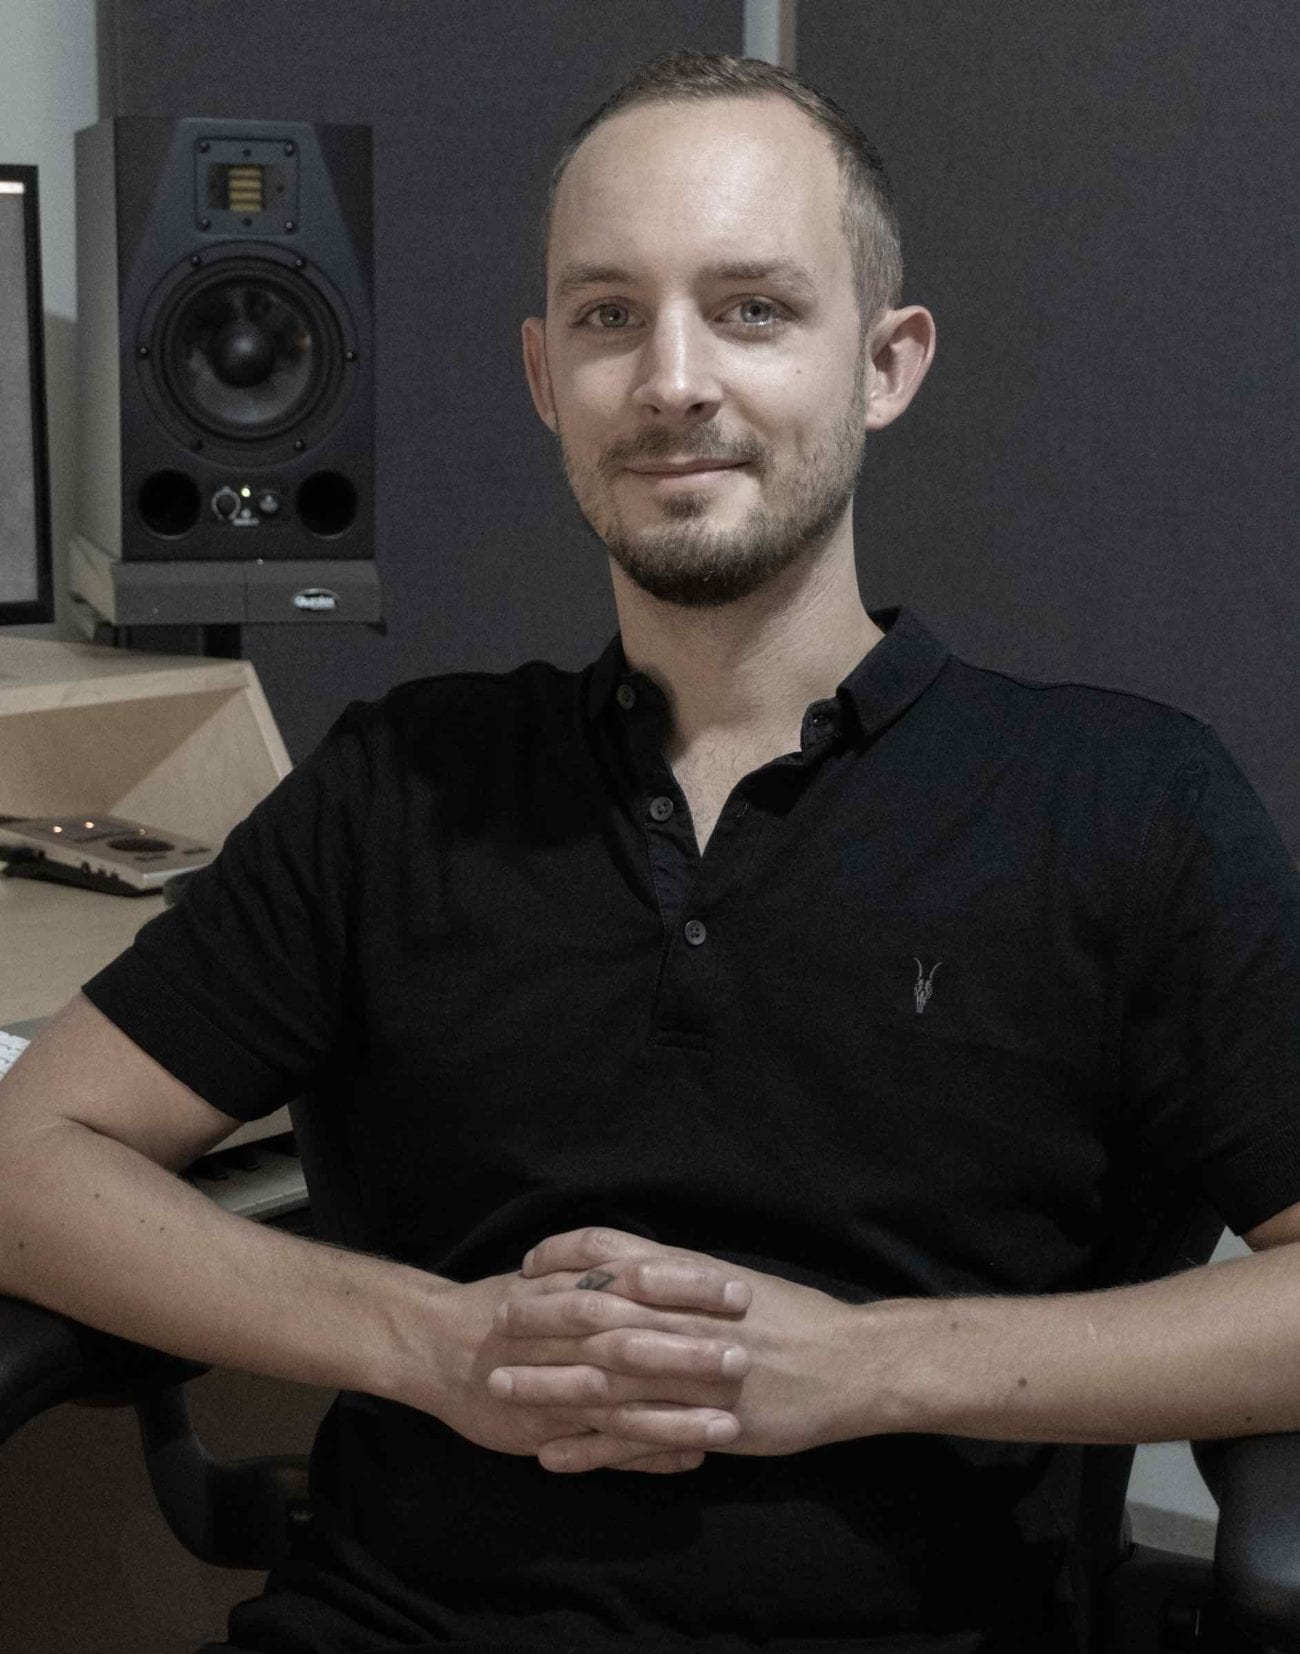 Sam Wale taps an extensive background and keen vision while overseeing the production of every album from concept stage to mastering and final release.